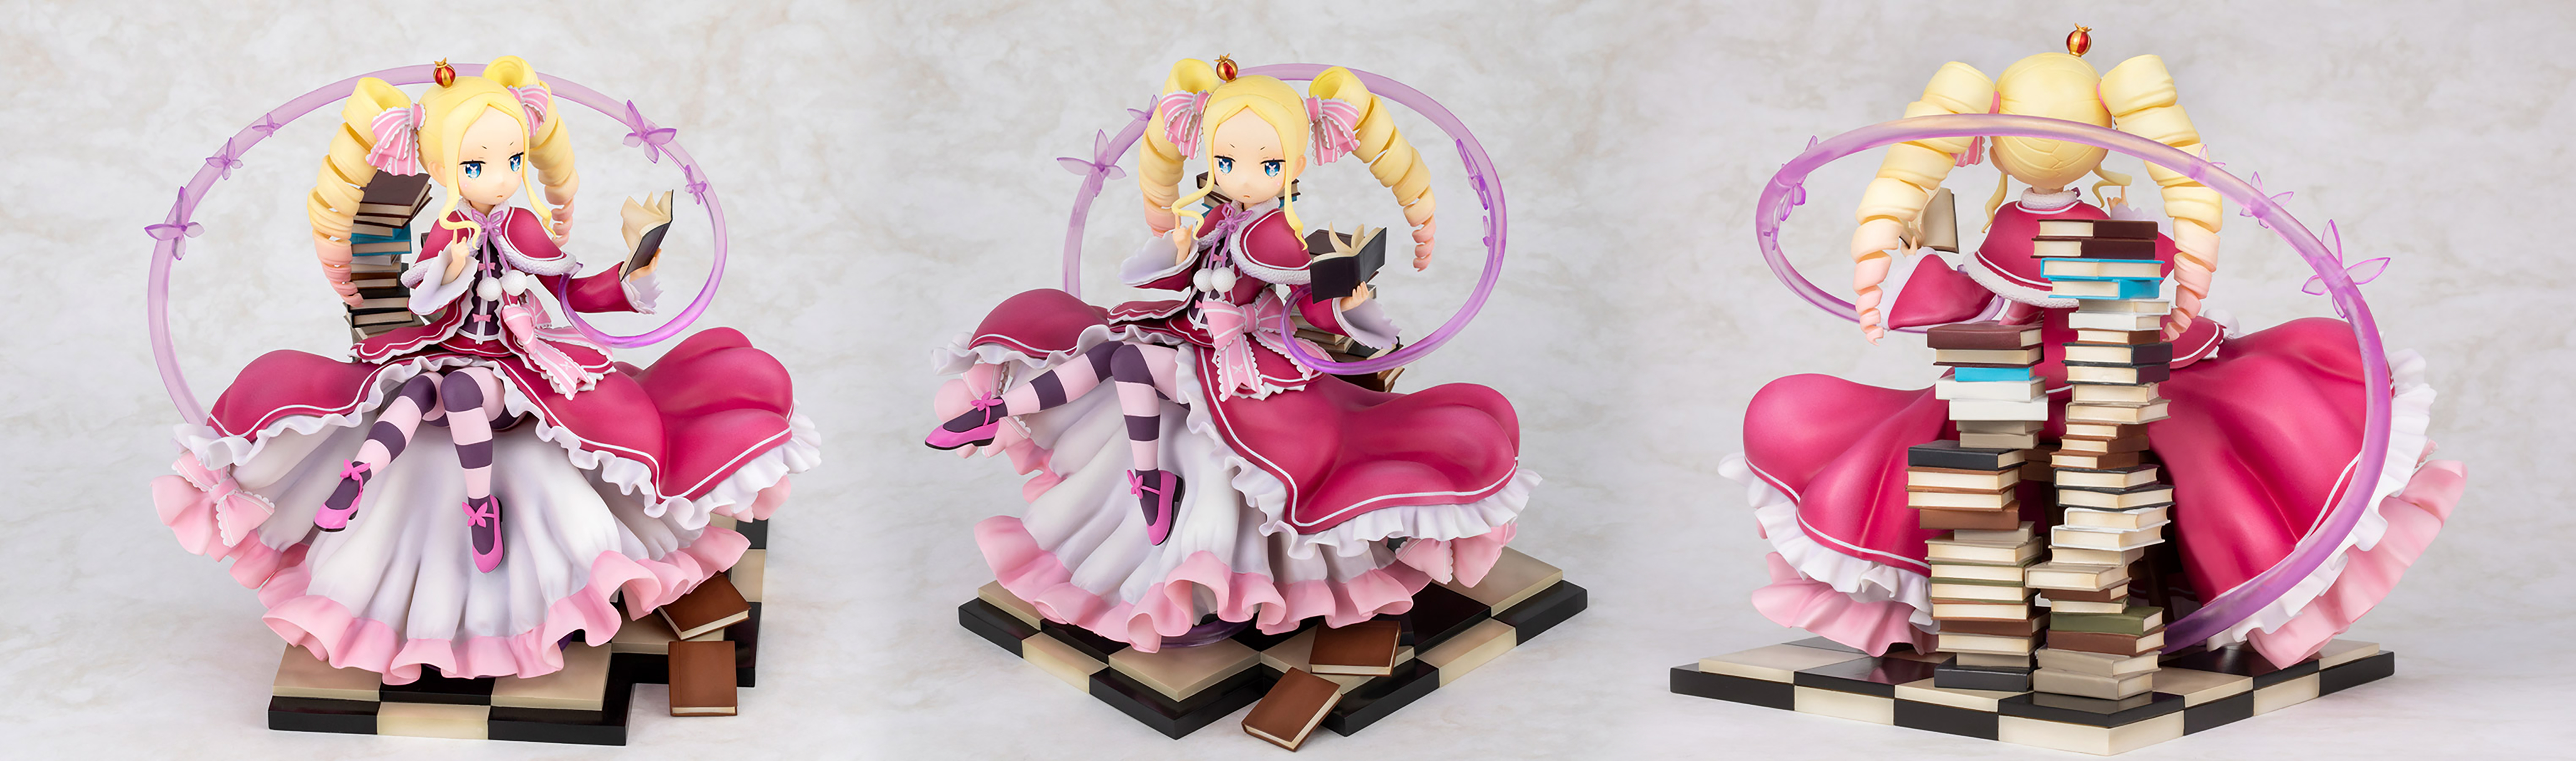 RE ZERO STARTING LIFE BEATRICE 1/7 PVC FIG